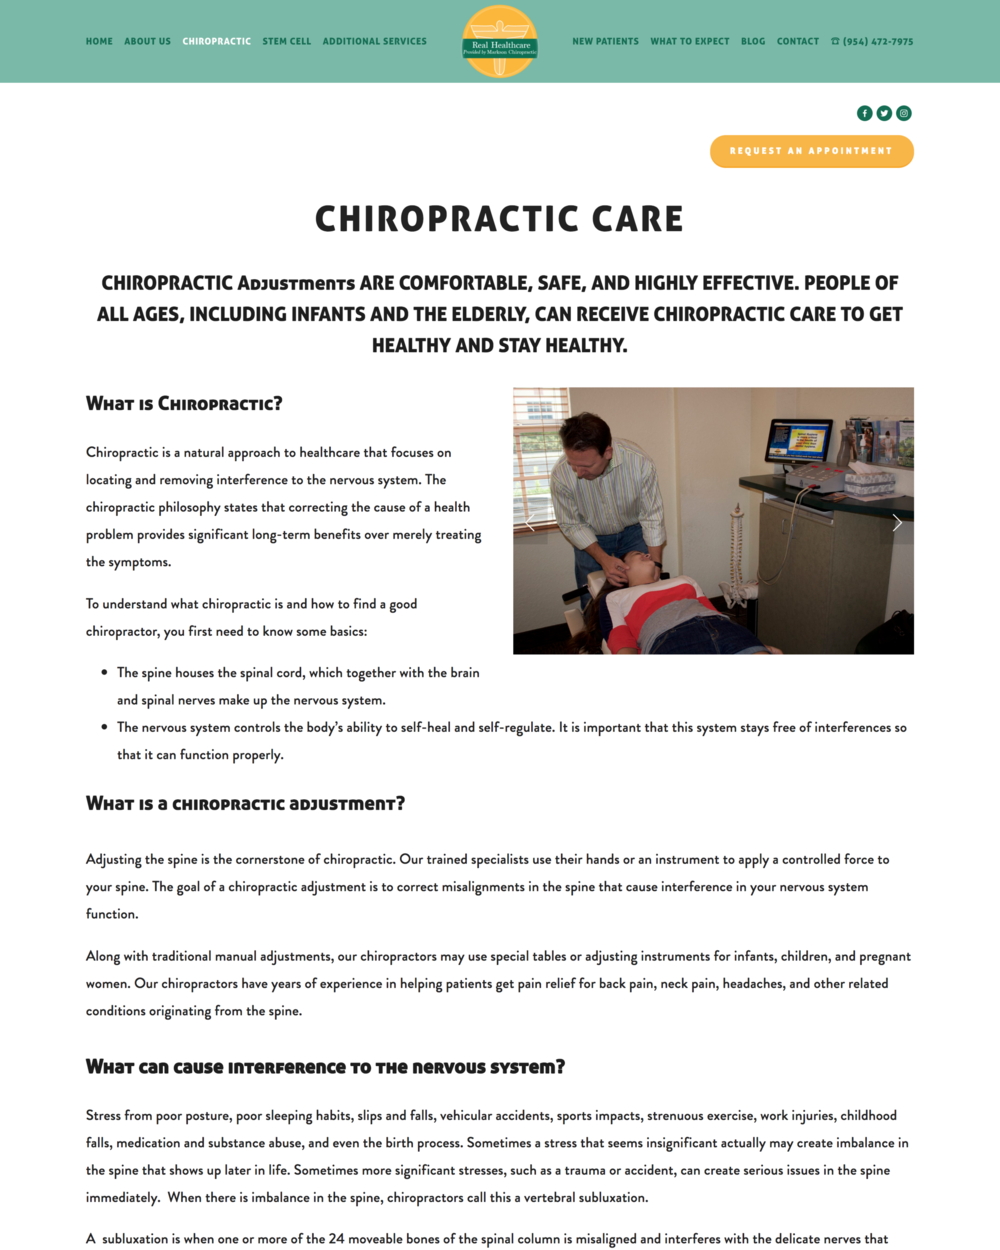 screencapture-marksonchiropractic-chiropractic-care-2018-09-11-13_14_07.png